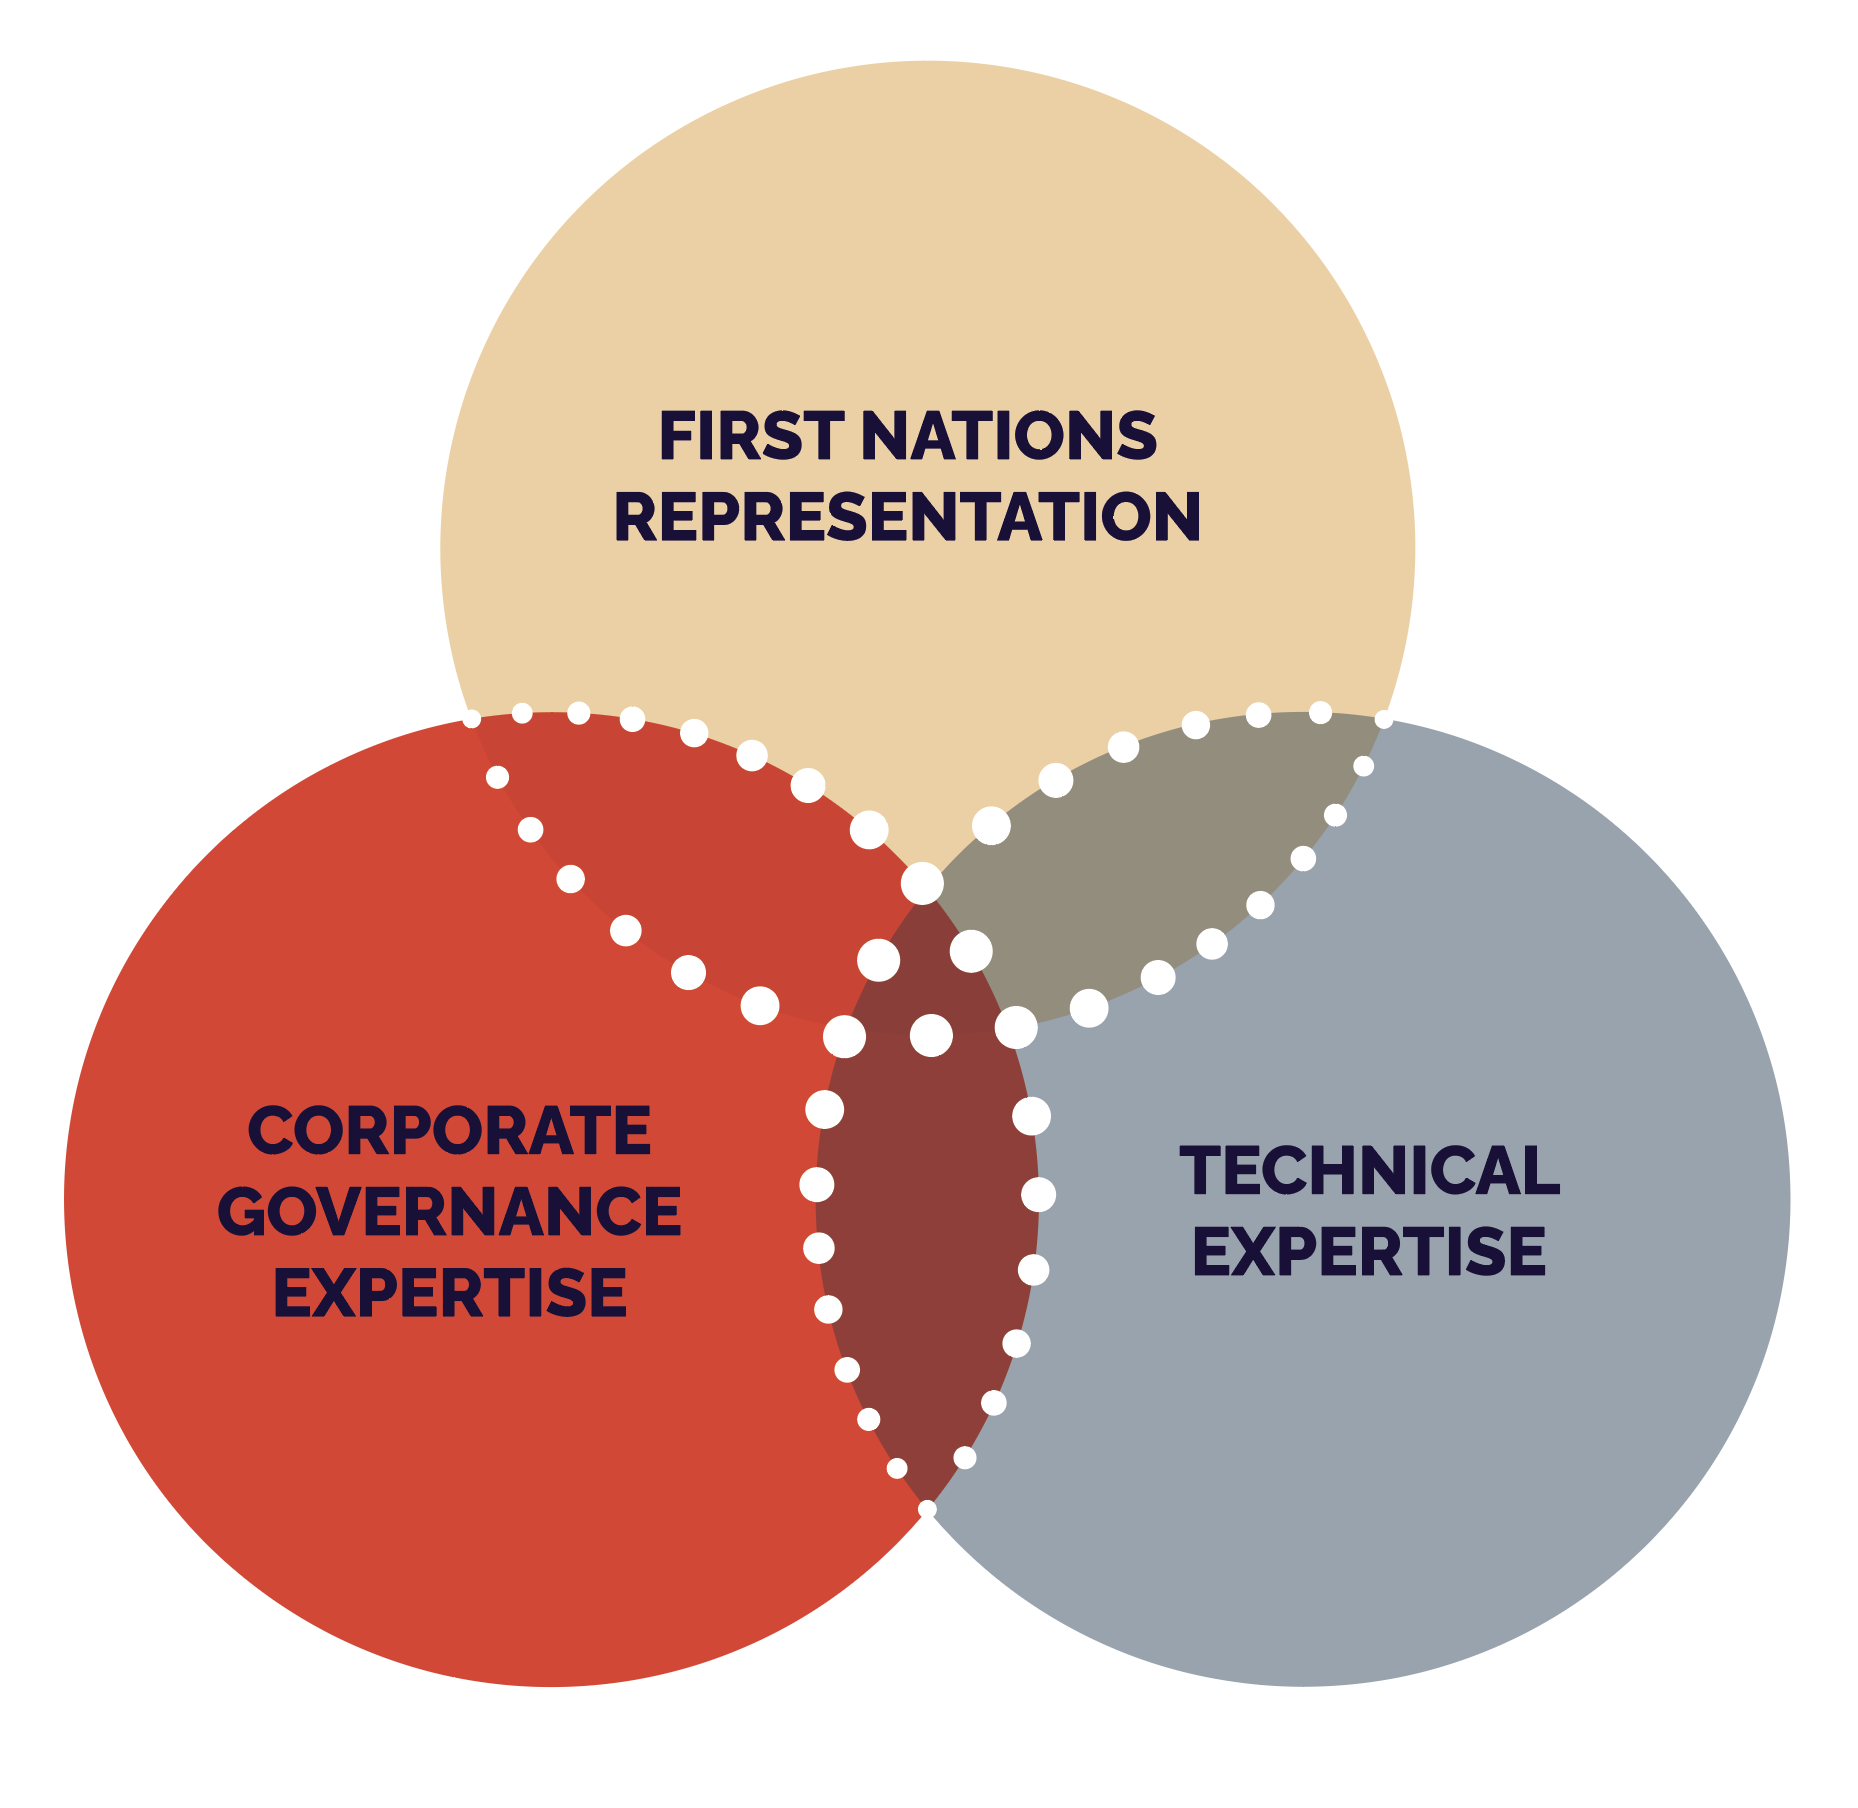 A venn diagram shows First Nations Representation, Corporate Governance Expertise, and Technical Expertise intersecting equally as three large circles